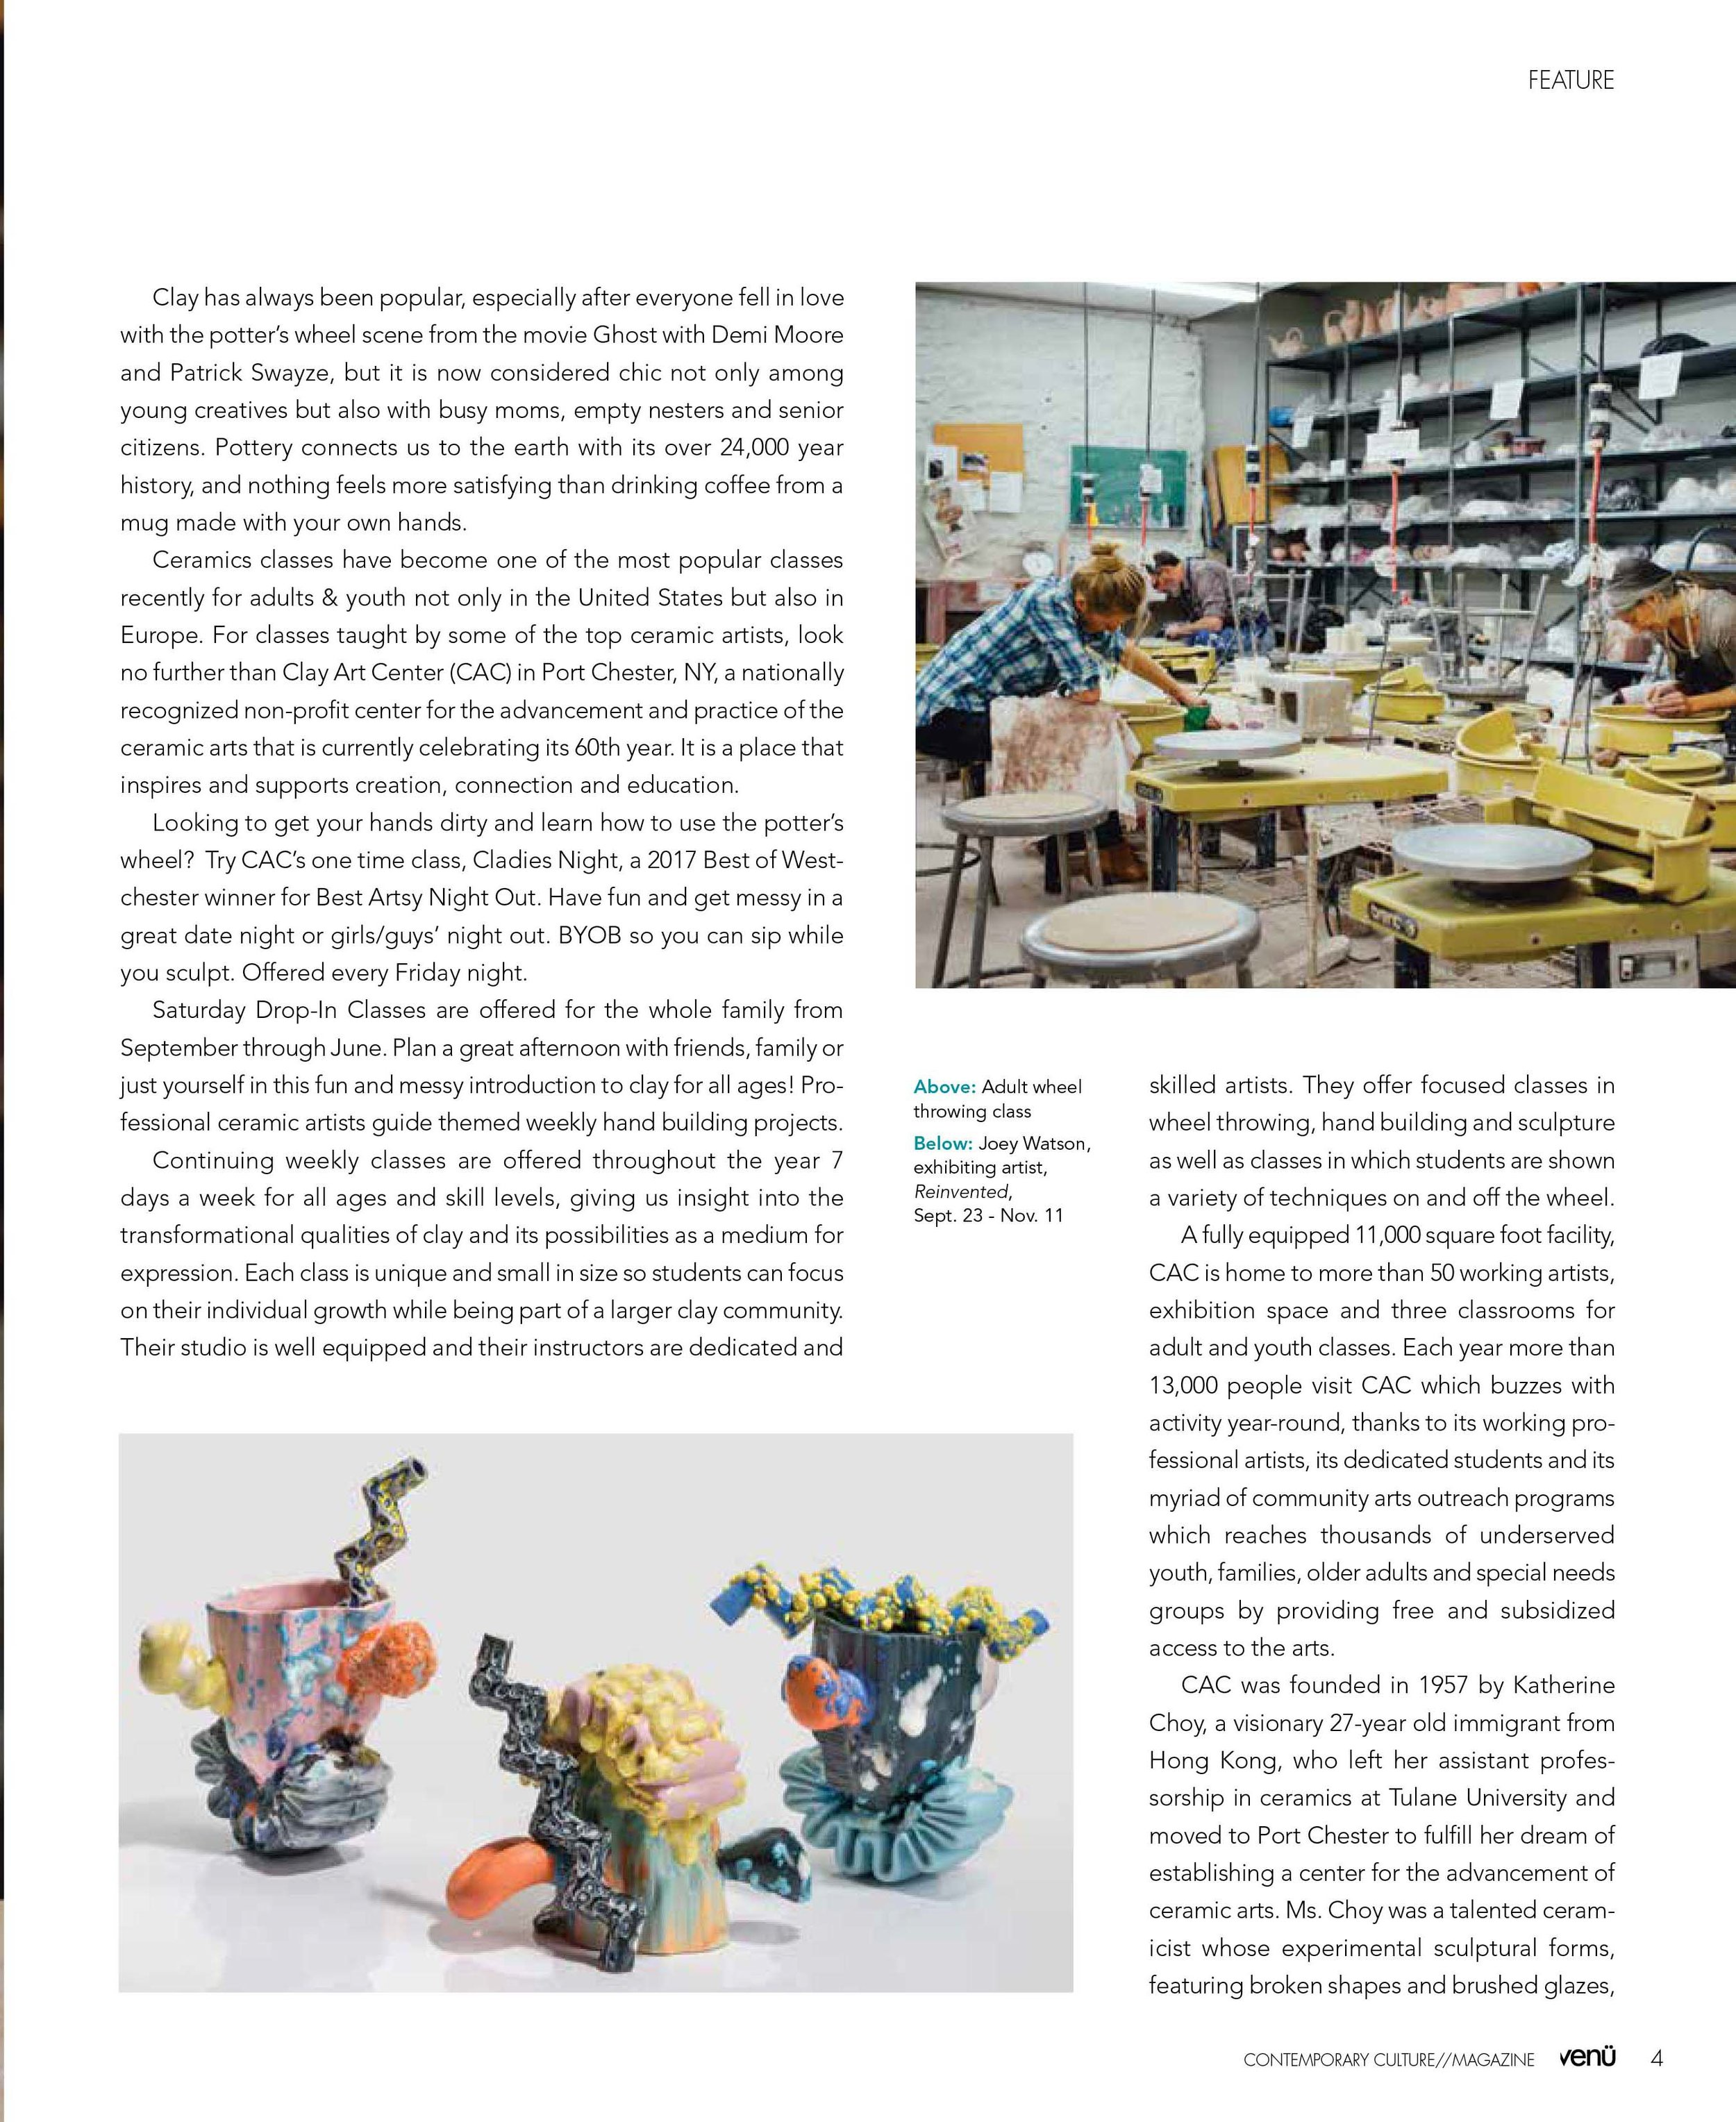 Clay Art Center Venu Magazine Feature Fall 2017-page 4.jpg